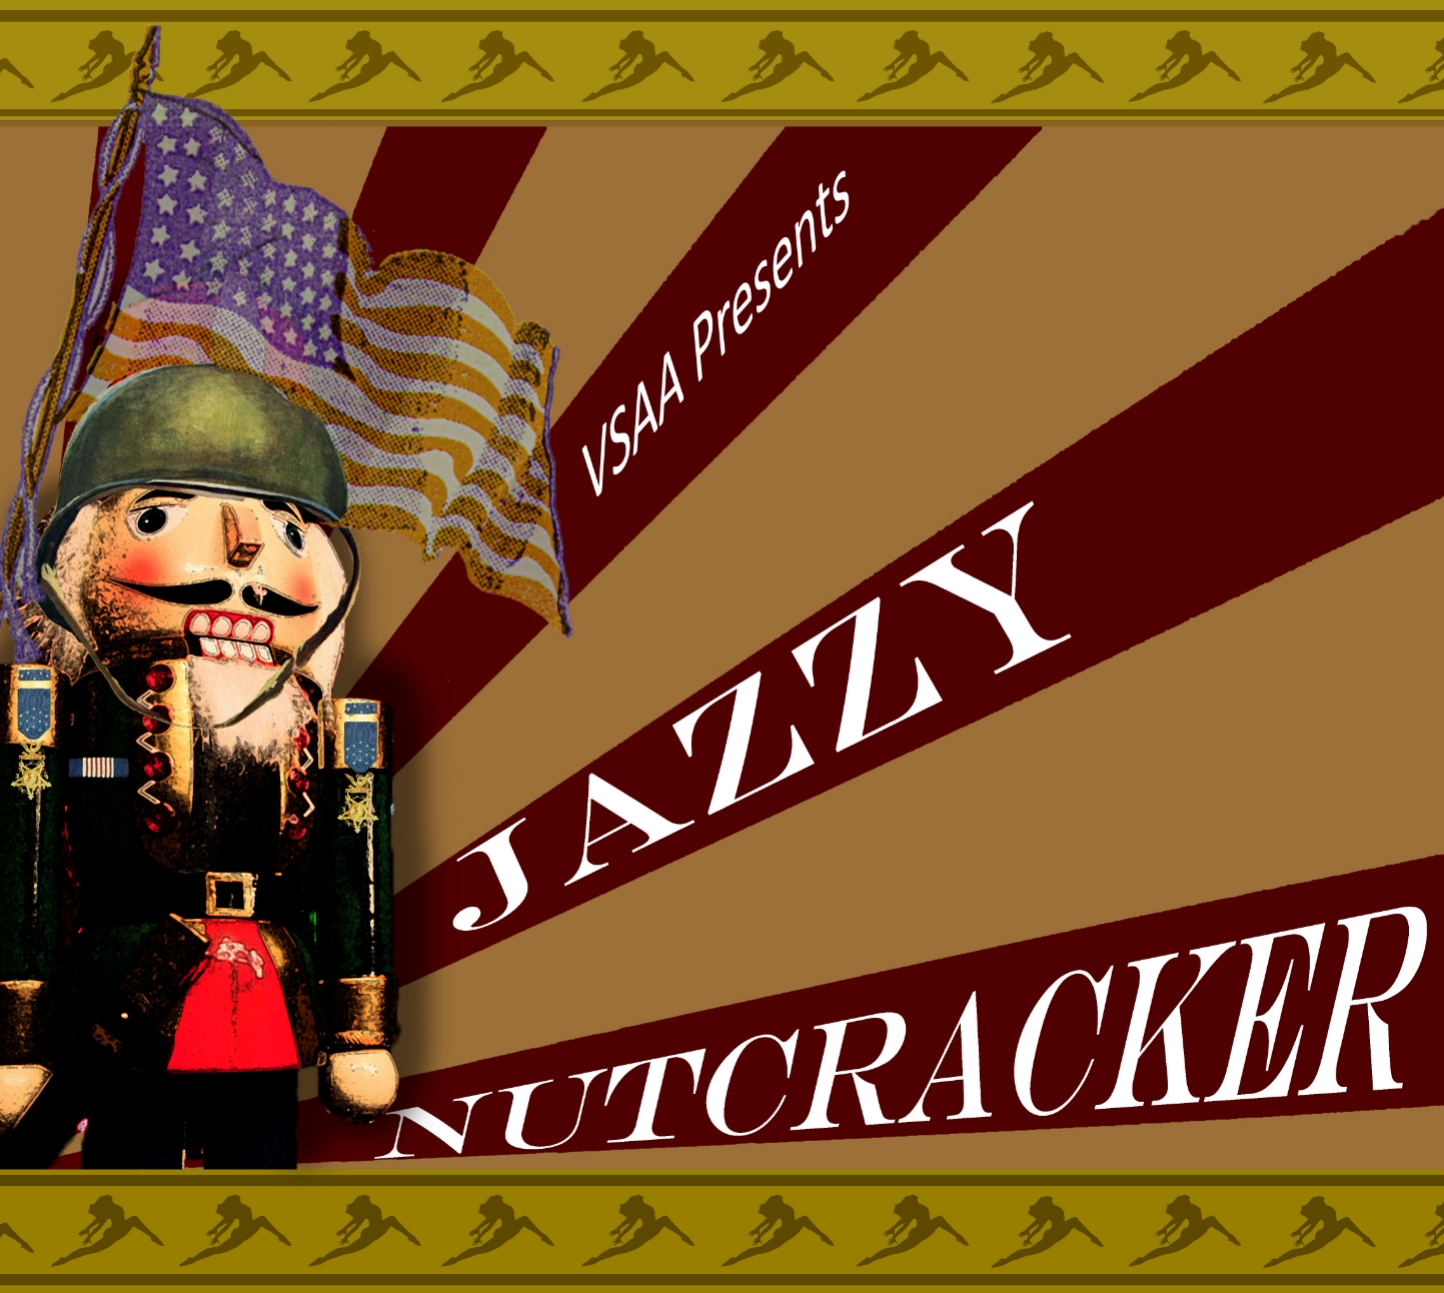 jazzy nutcracker poster_1-Recovered (1)